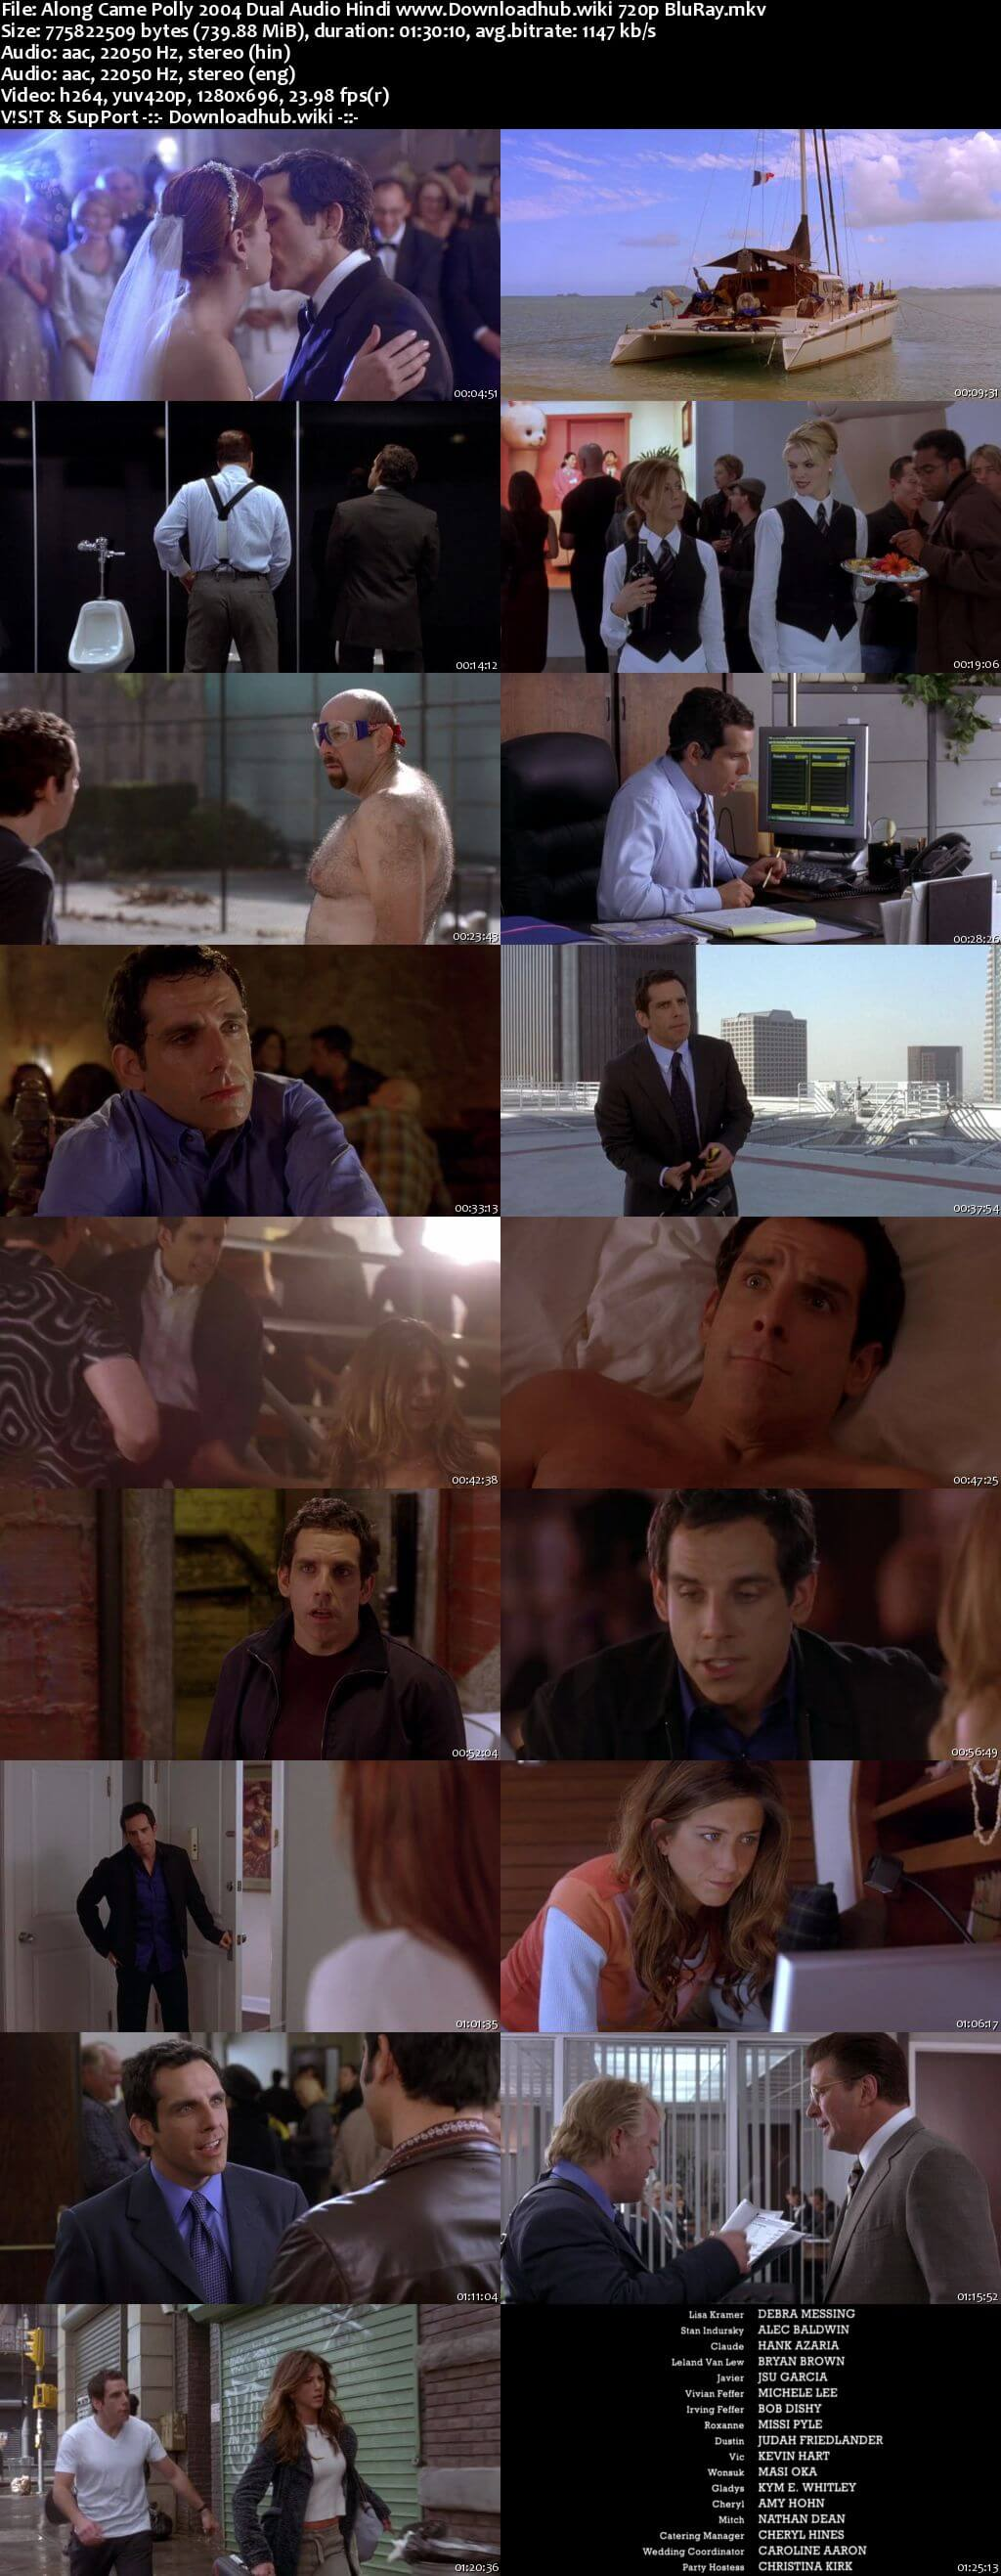 Along Came Polly 2004 Hindi Dual Audio 720p BluRay ESubs